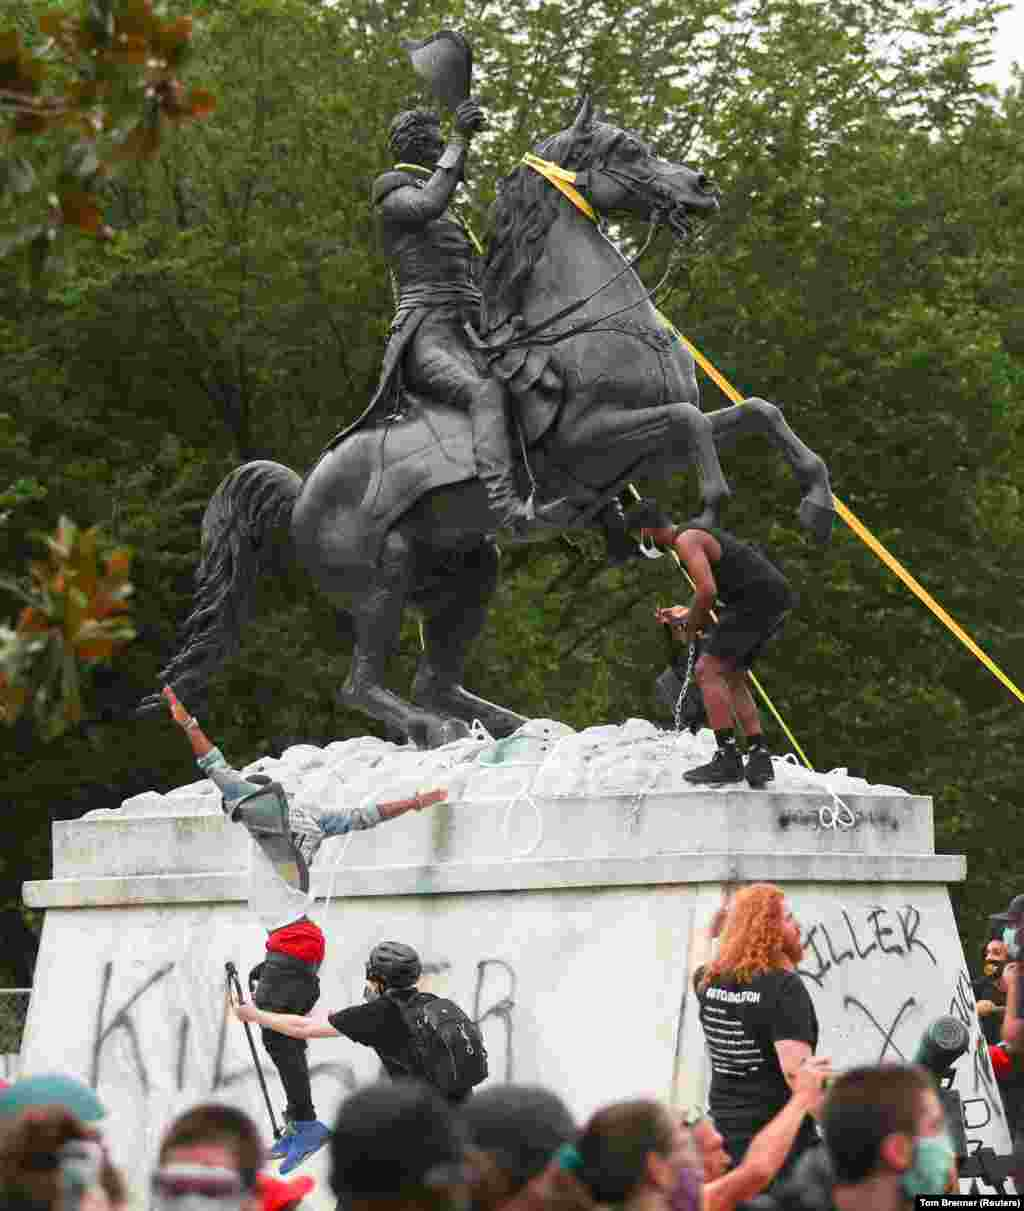 Protestors attempt to pull down the statue of U.S. President Andrew Jackson in the middle of Lafayette Park in front of the White House during racial inequality protests in Washington, D.C., U.S., June 22, 2020.